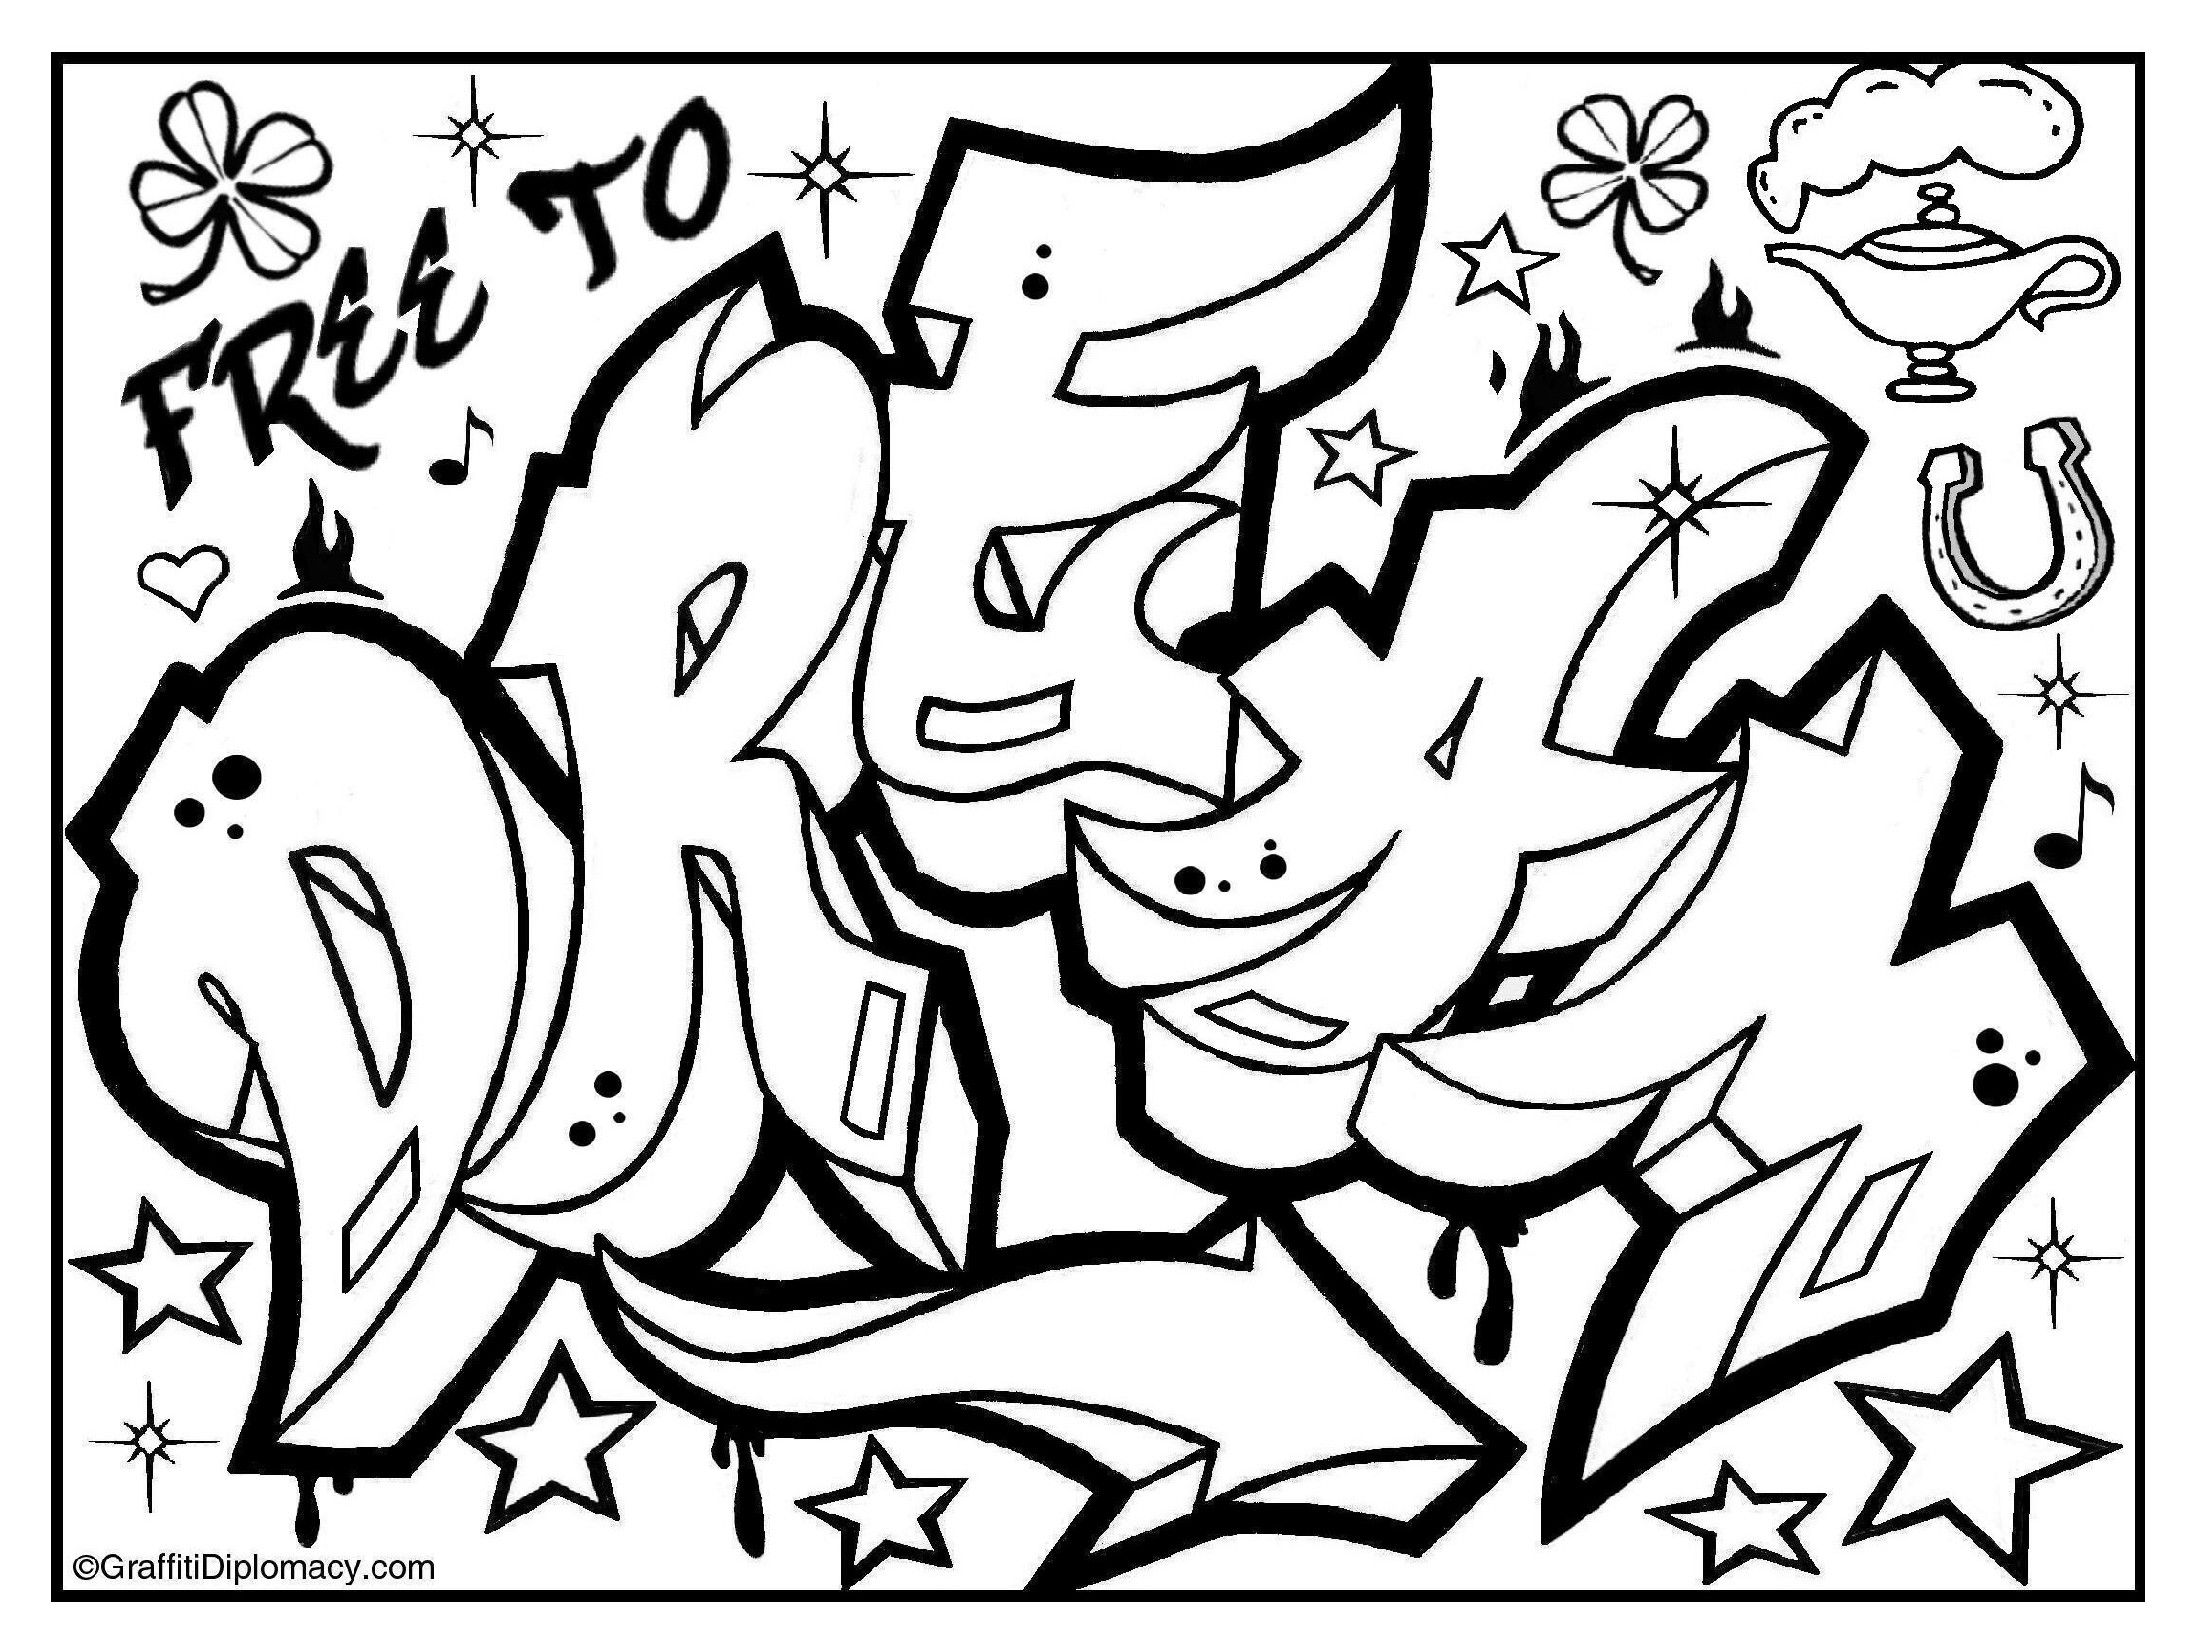 How To Draw Graffiti Letters Step By Step On Paper Graffiti Coloring Book Because Ys A Crooked Letter By Graffiti